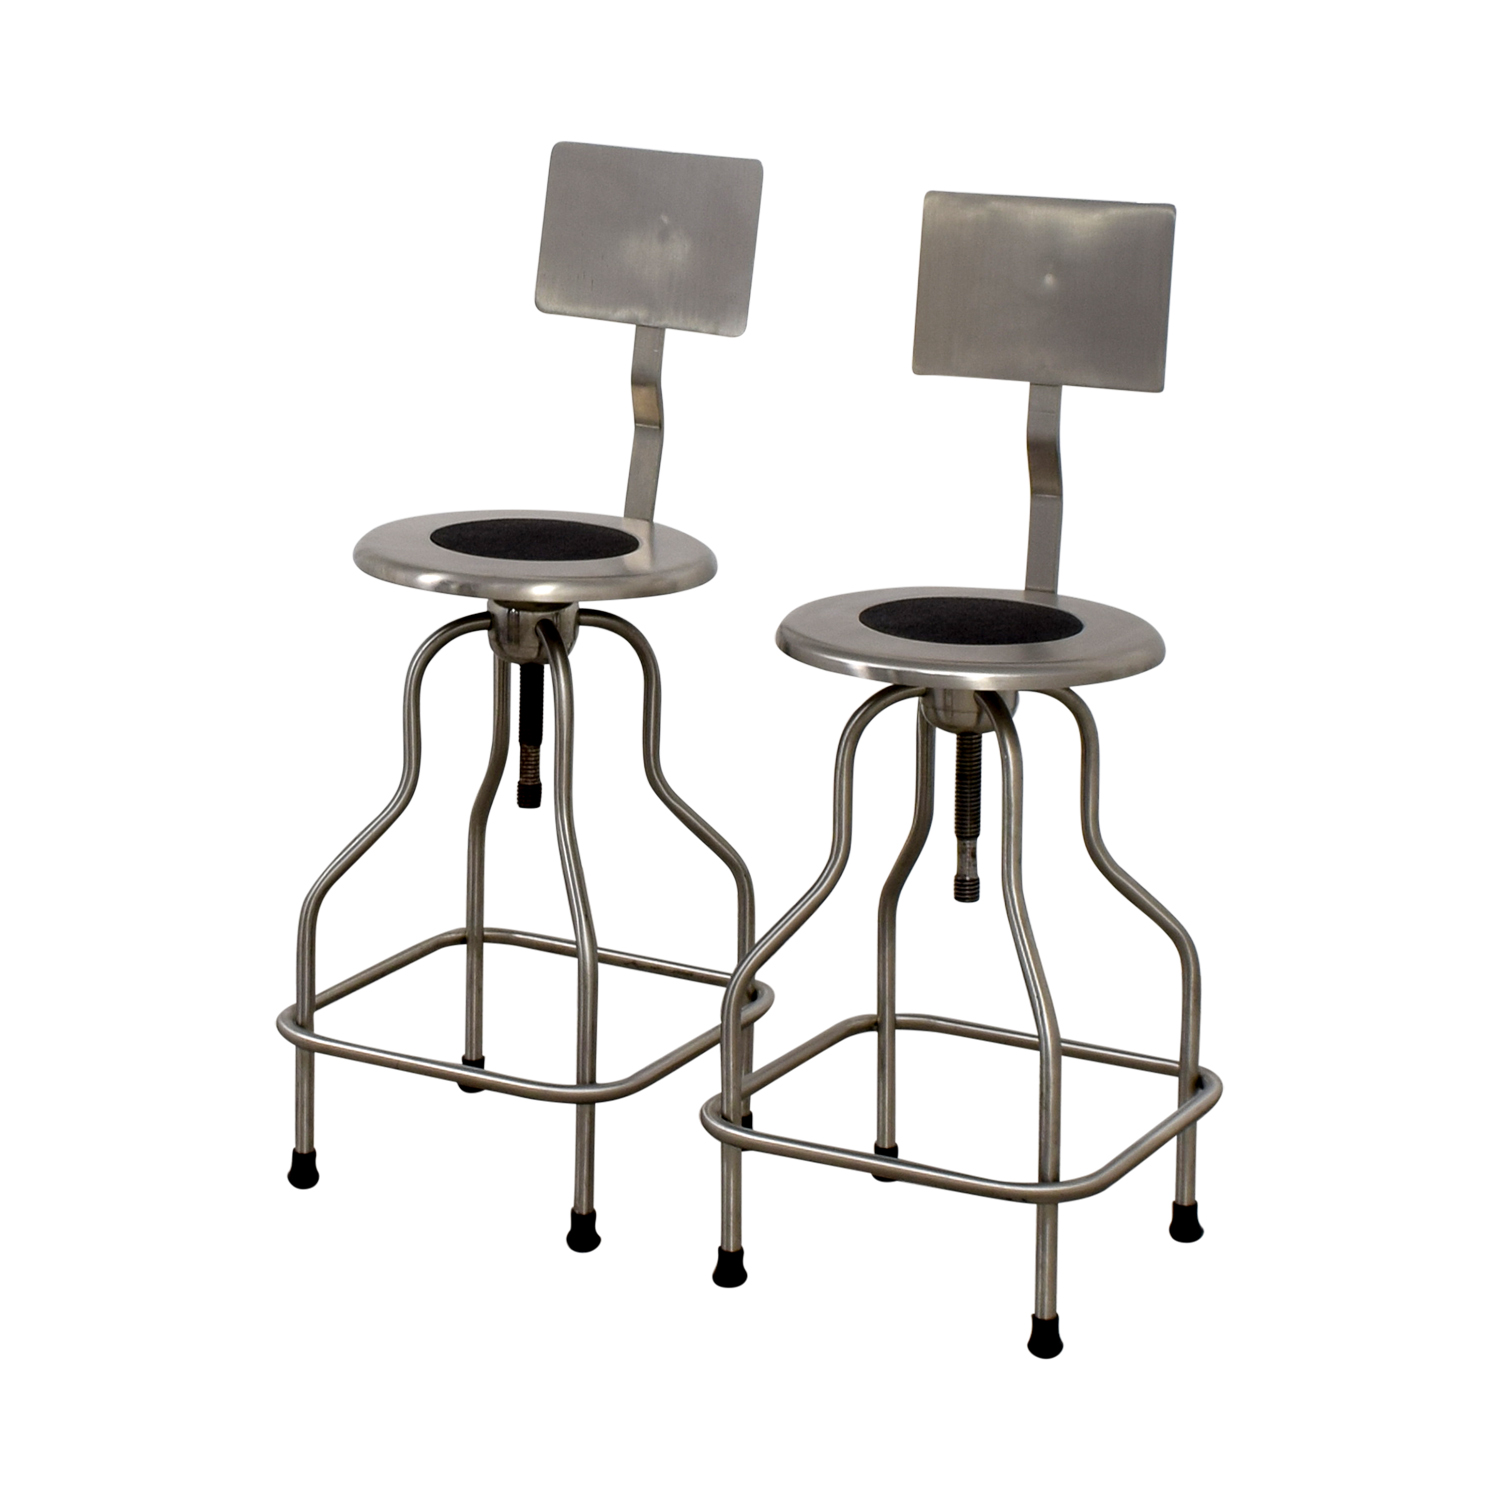 67 off design within reach design within reach steel precision stools with back rest chairs. Black Bedroom Furniture Sets. Home Design Ideas